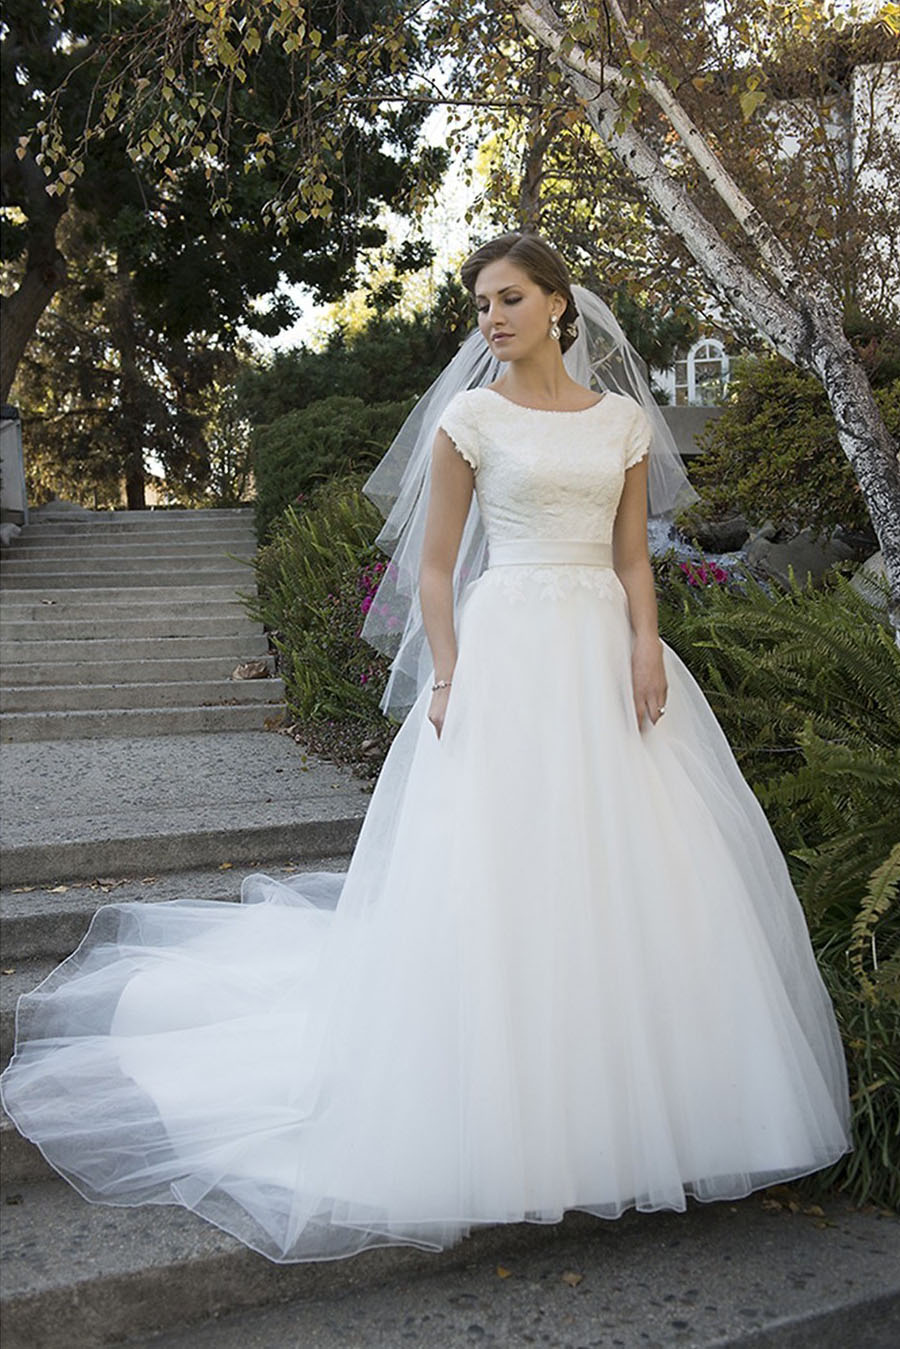 25 Modest Ball Gown Wedding Dresses - 21